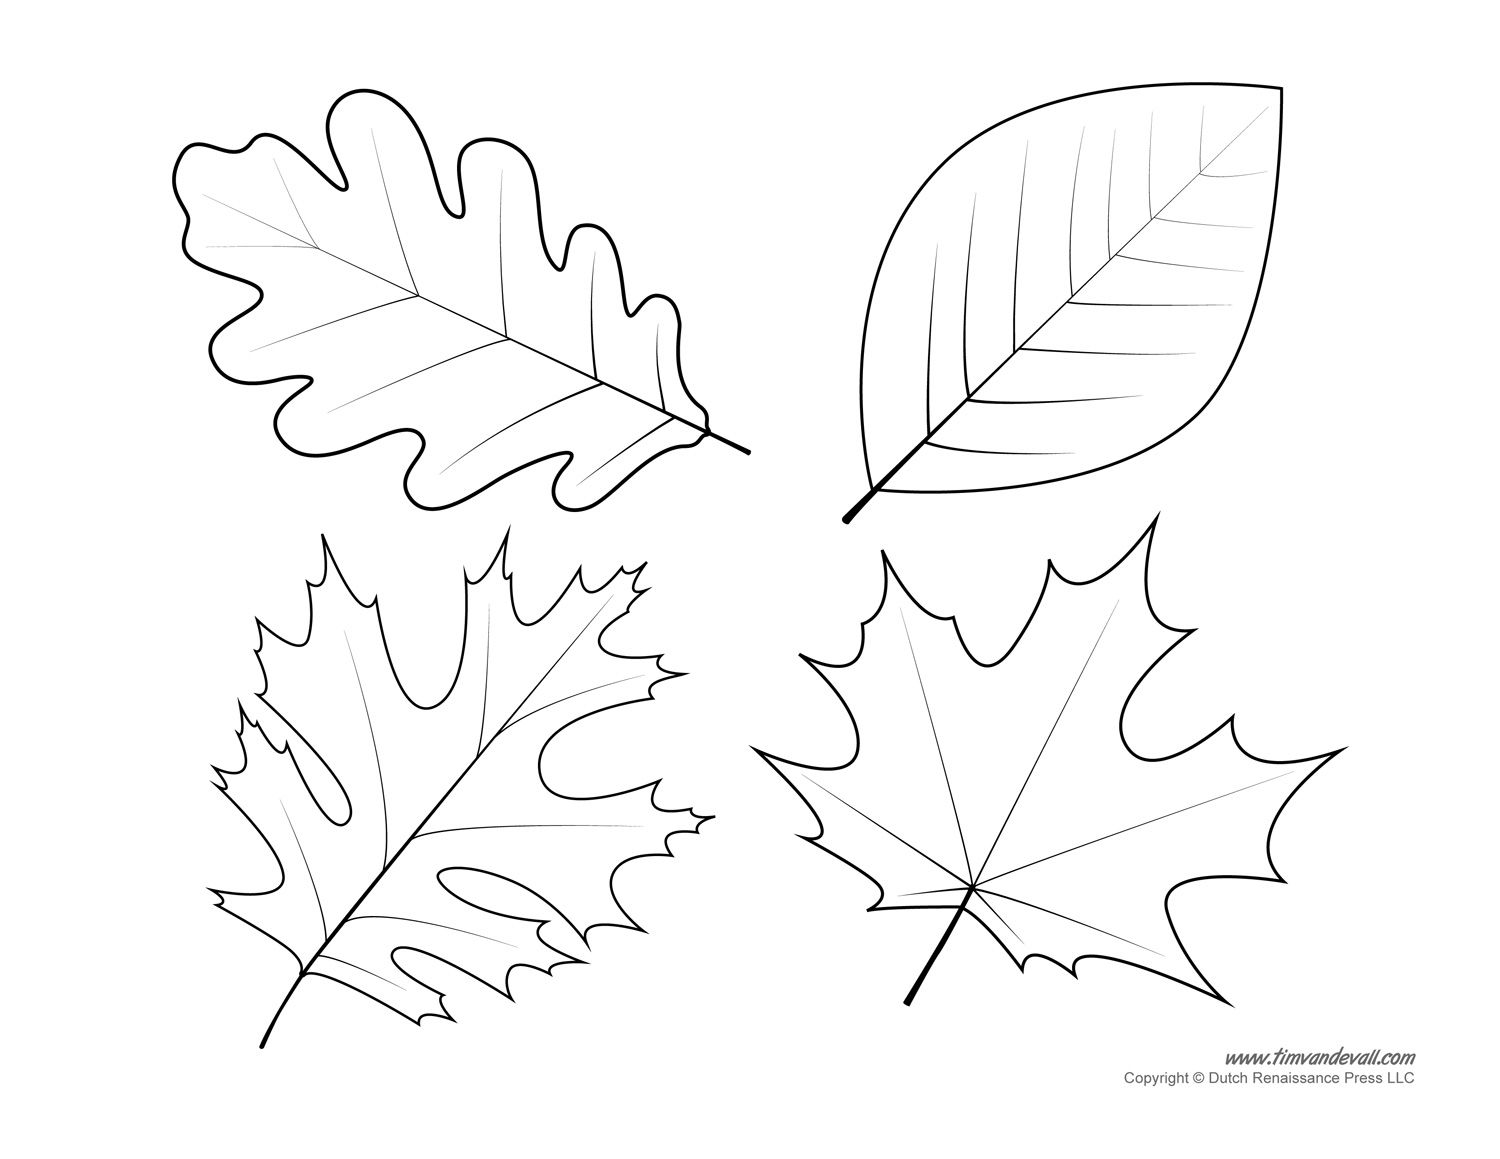 photo regarding Free Printable Leaf Template identified as Leaf Templates Leaf Coloring Internet pages for Small children Leaf